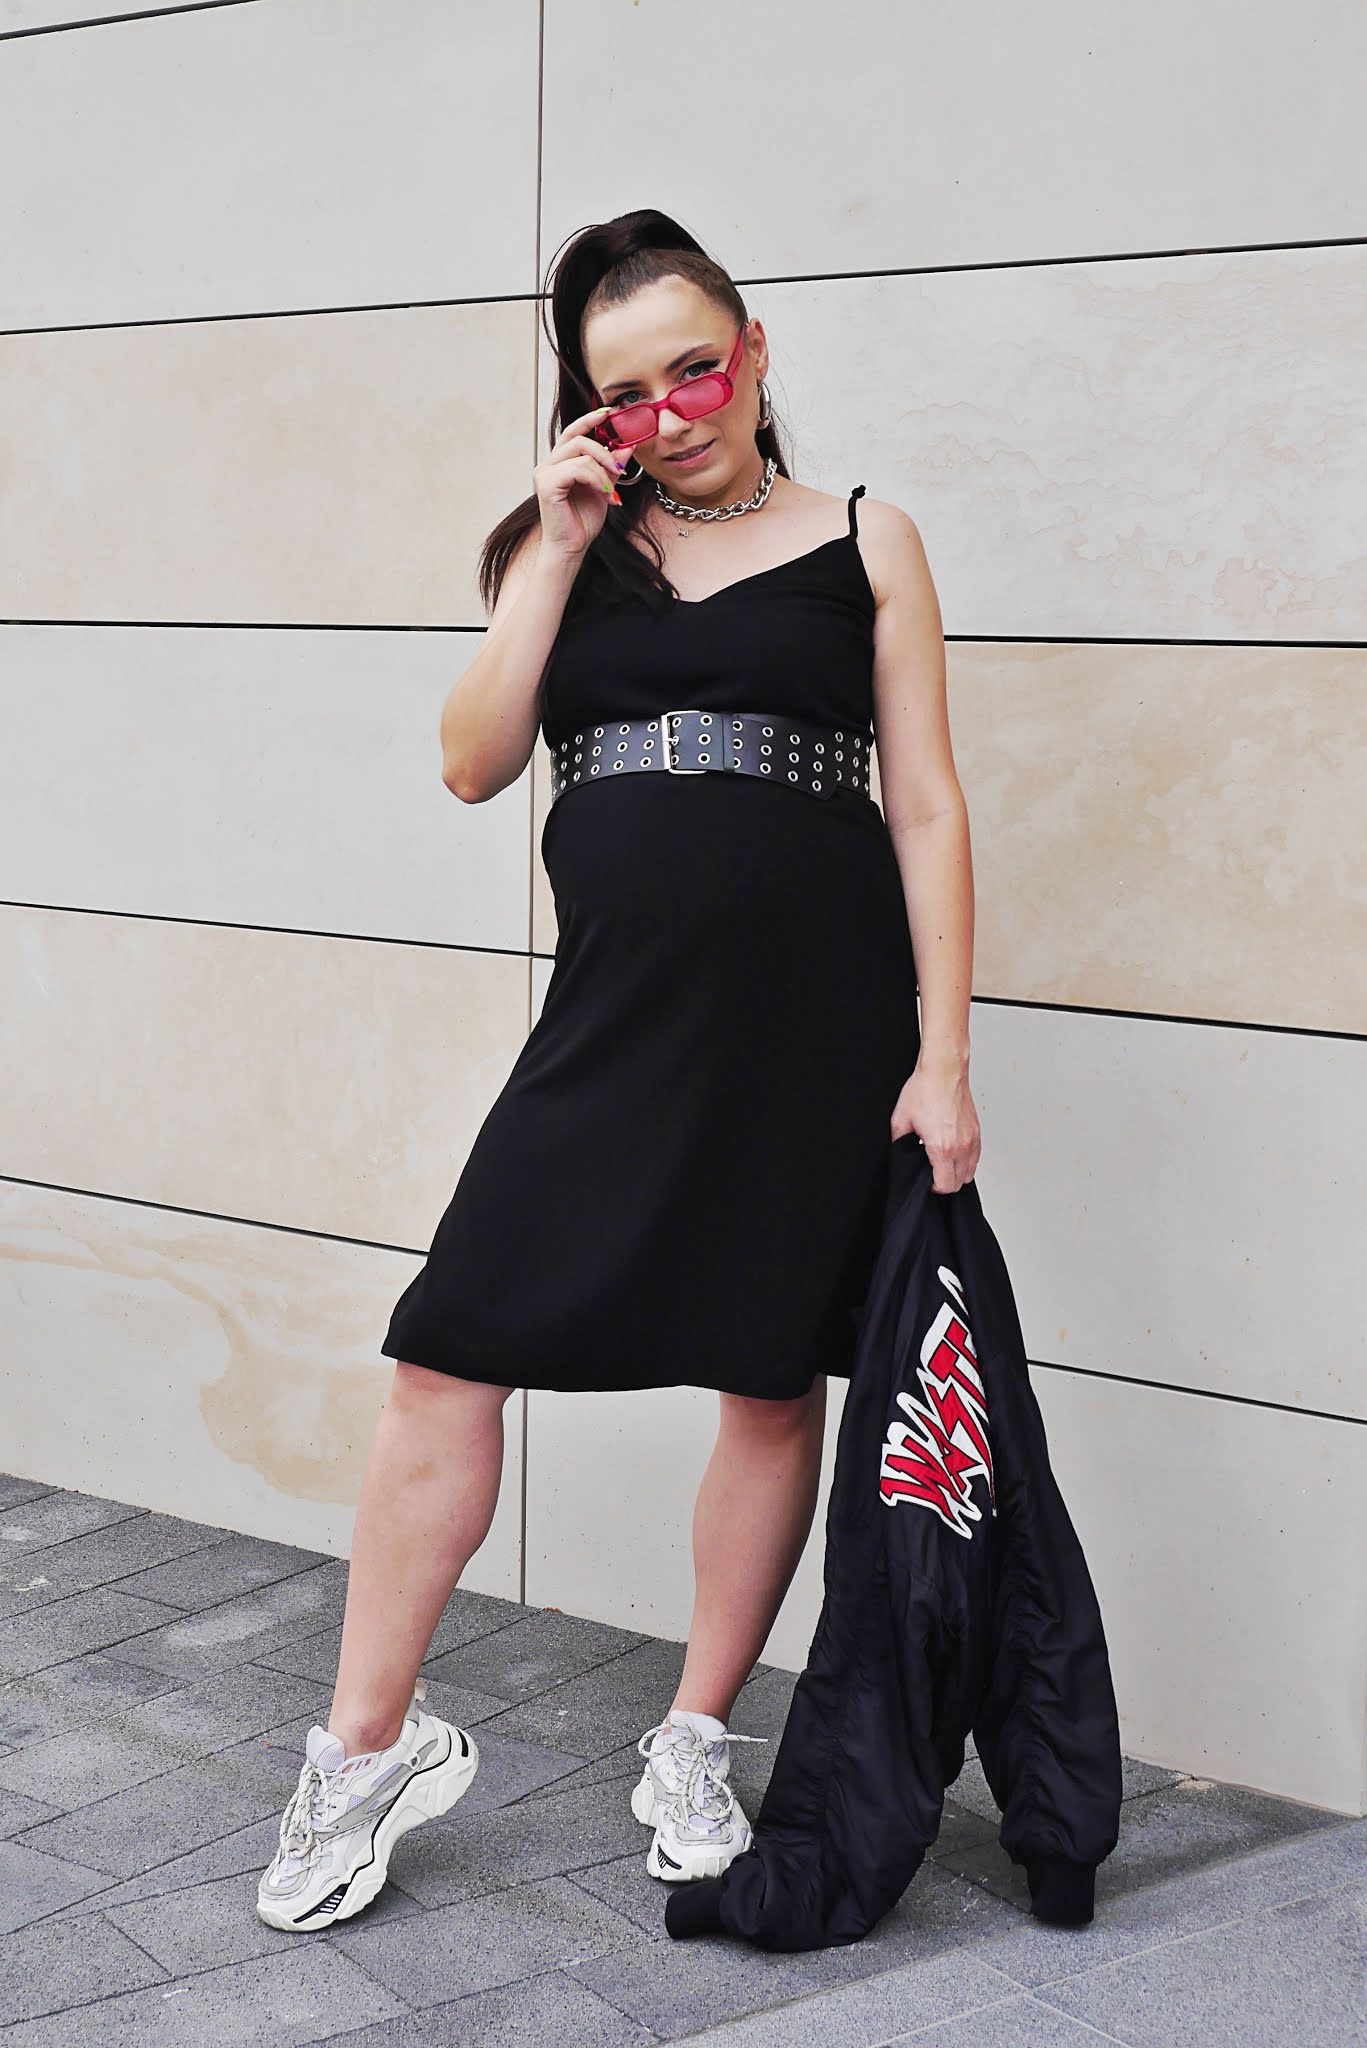 fashion blogger pregnat style preggo look outfit ootd black dress pink sunglasses bikbok bomber jacket waste no time white ugly shoes ccc